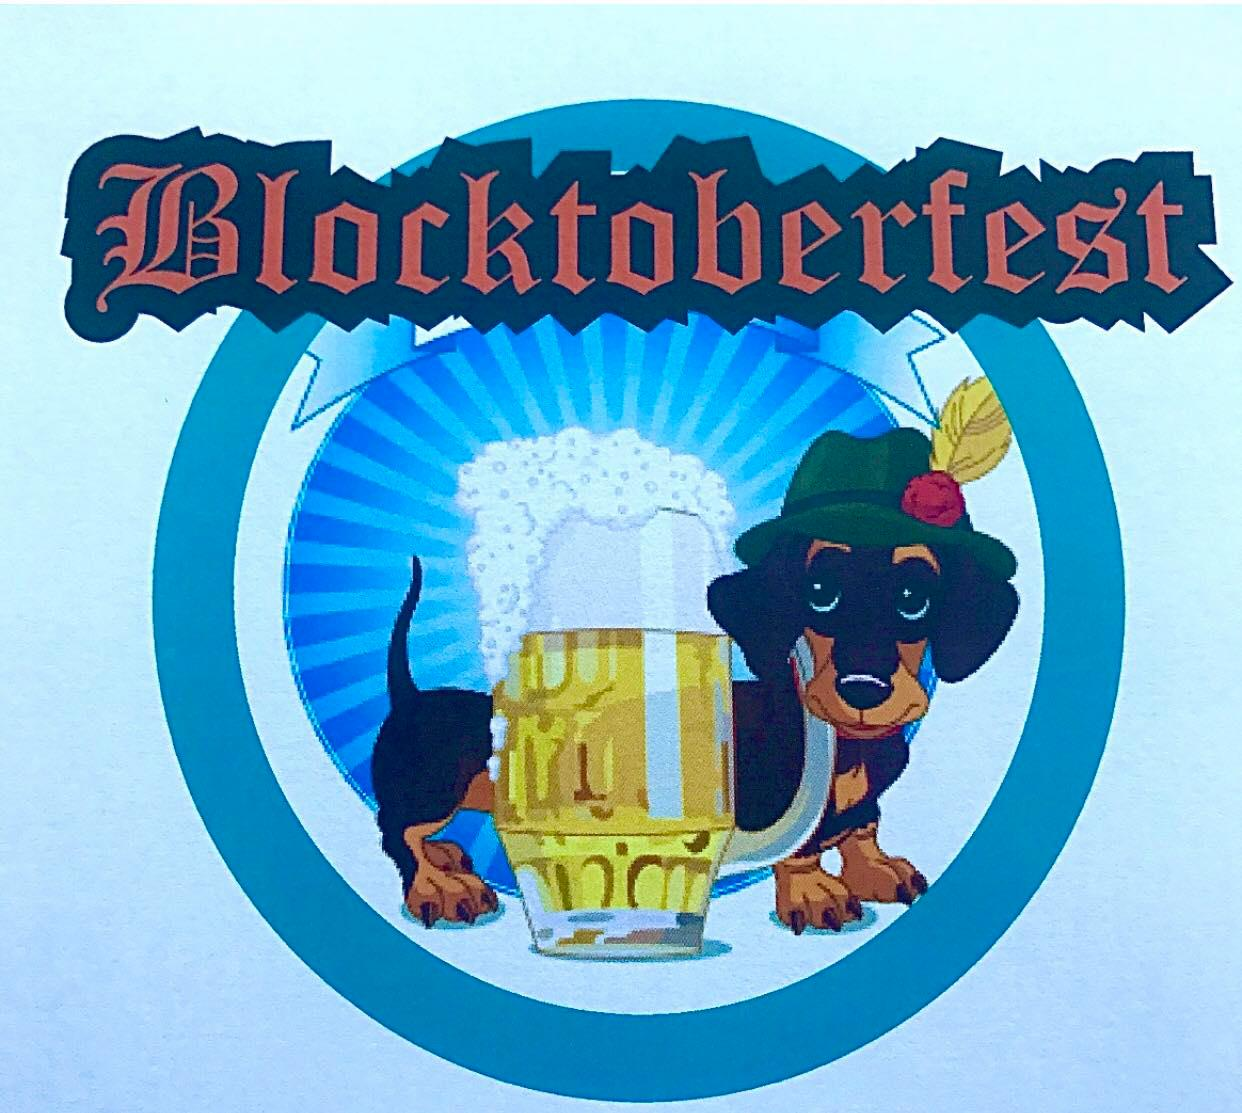 Happy September! Stop in for a Blocktoberfest-on tap today! Open-Monday-Thursday 2-10 Friday-Saturday-11-11 Sunday-2-10 Cheers!